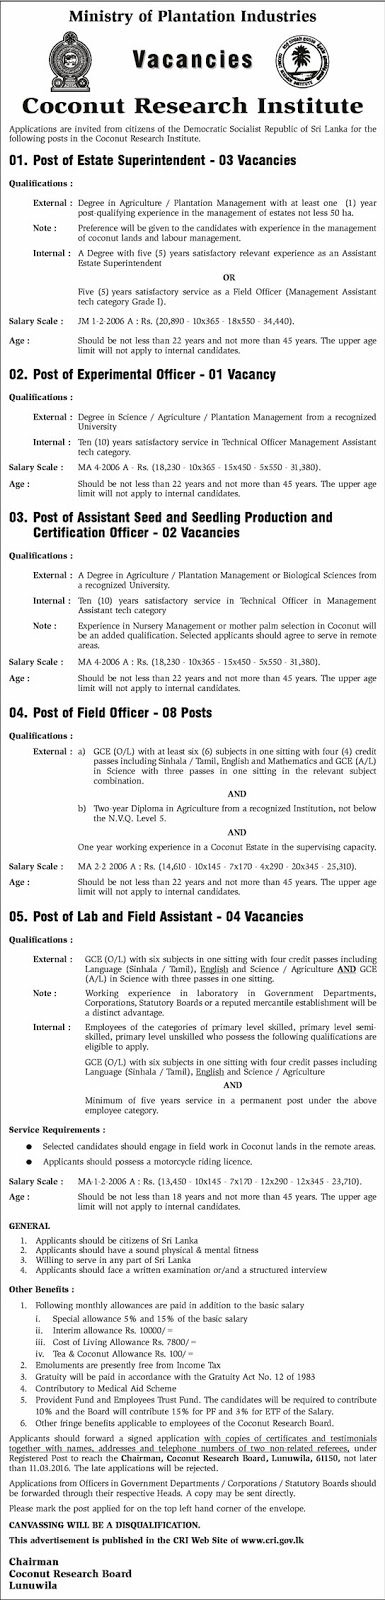 Vacancies - Estate Superintendent, Experimental Officer, Assistant Seed & Seeding Production and Certification Officer, Field Officer, Lab & Field Assistant - Coconut Research Institute - Ministry of Plantation Industries